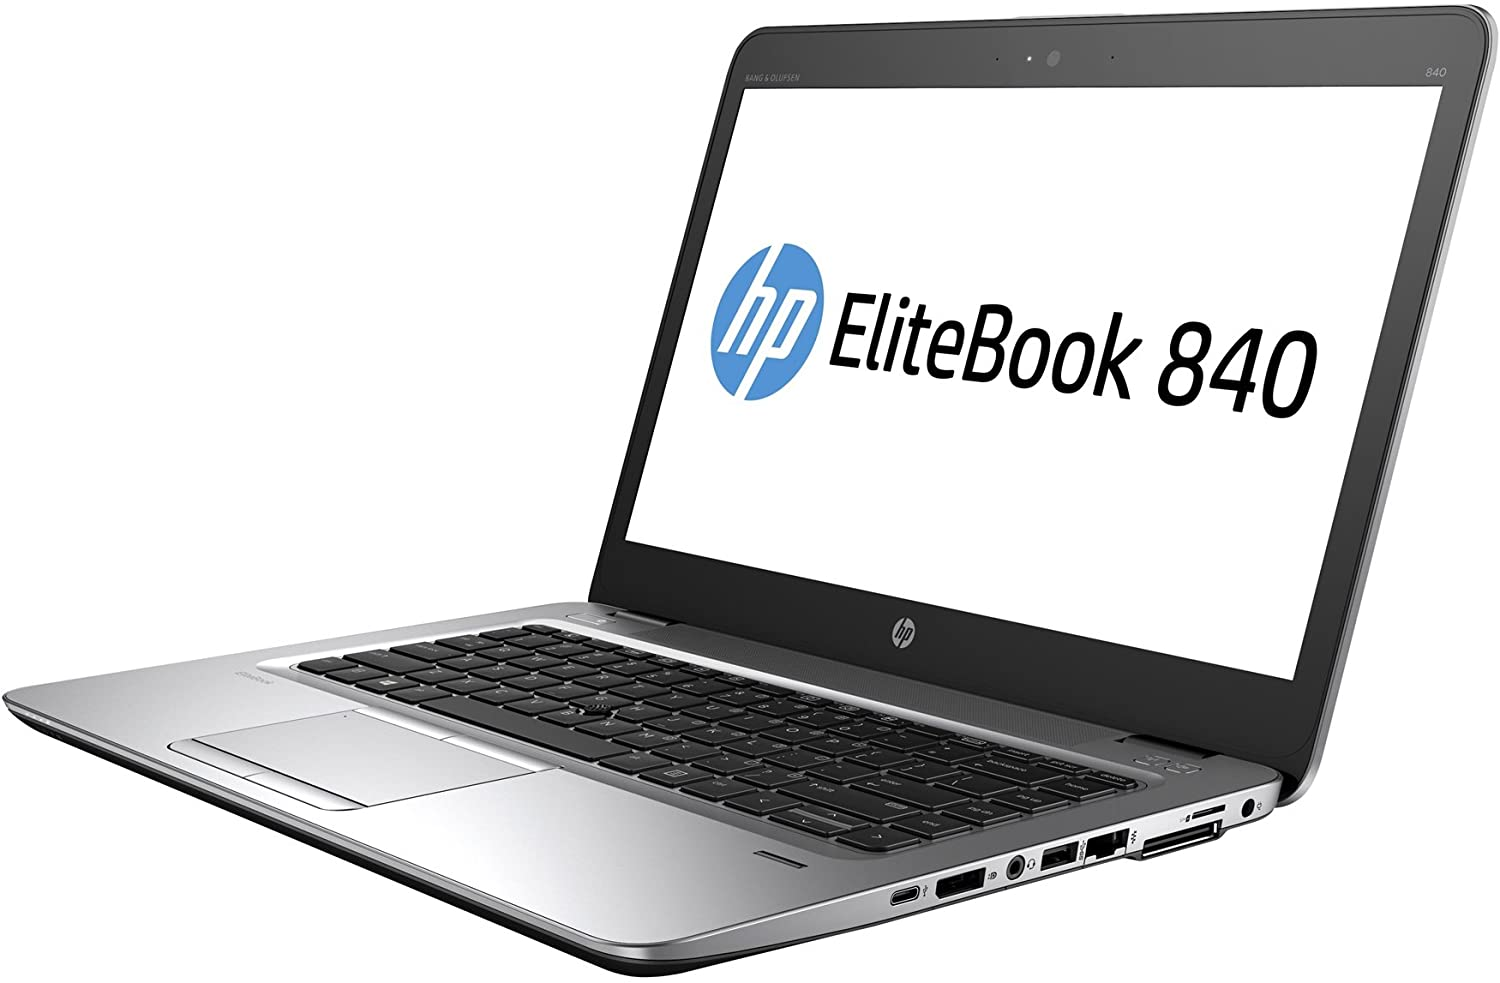 HP EliteBook 840 G1 14 Inch Business Laptop Computer (Intel Dual Core i7 2.1GHz Processor, 8GB RAM, 240GB SSD, USB 3.0, VGA, Wifi, RJ45, Windows 10 Professional) (Renewed)